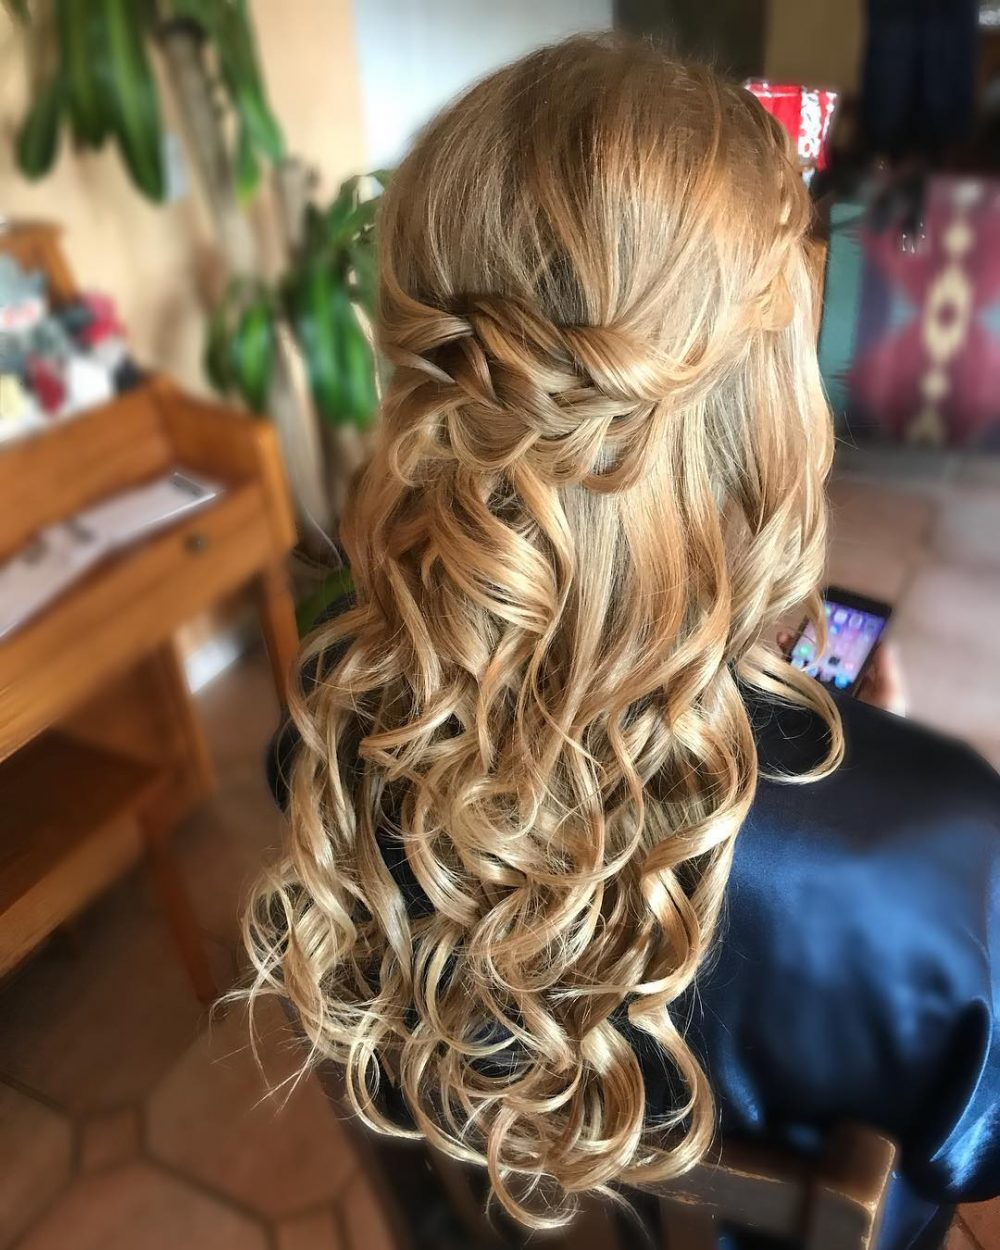 wedding hairstyles for long hair: 24 creative & unique wedding styles